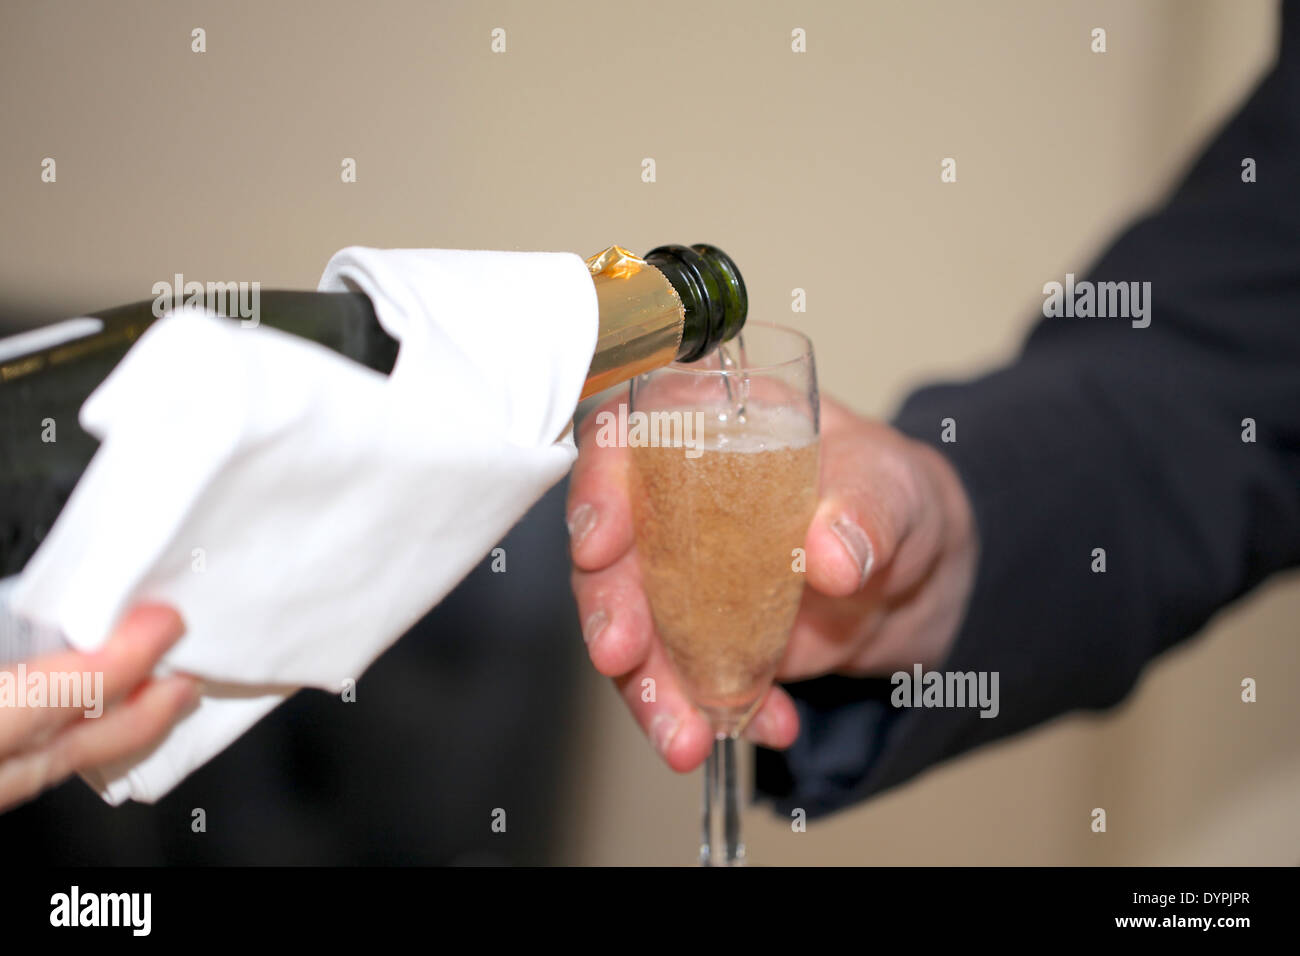 Veuve Durand champagne being poured into a champagne flute by a sommelier at a wedding - Stock Image